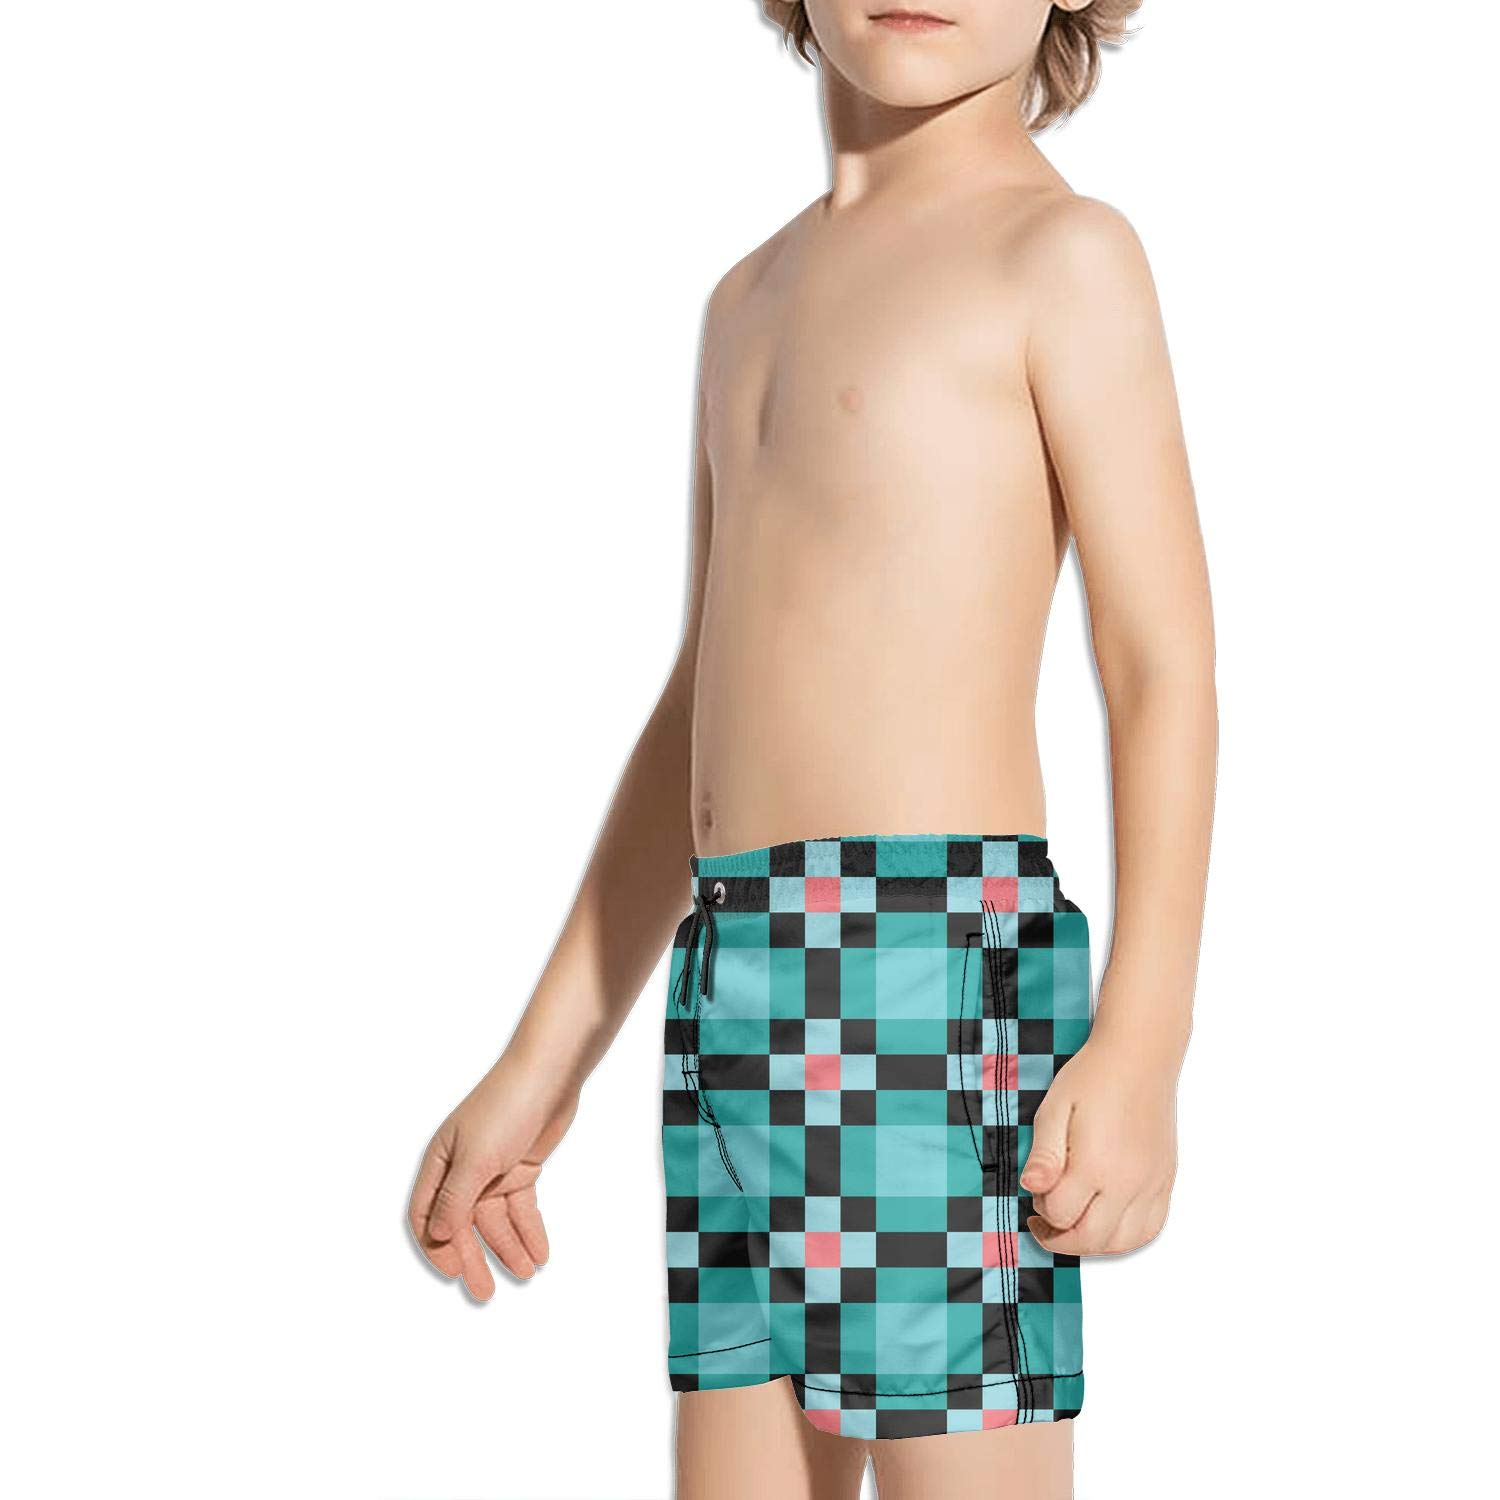 uejnnbc Checkerboard Geometric Vacation Slim Fit Solid Board Swimming Trunks Shorts